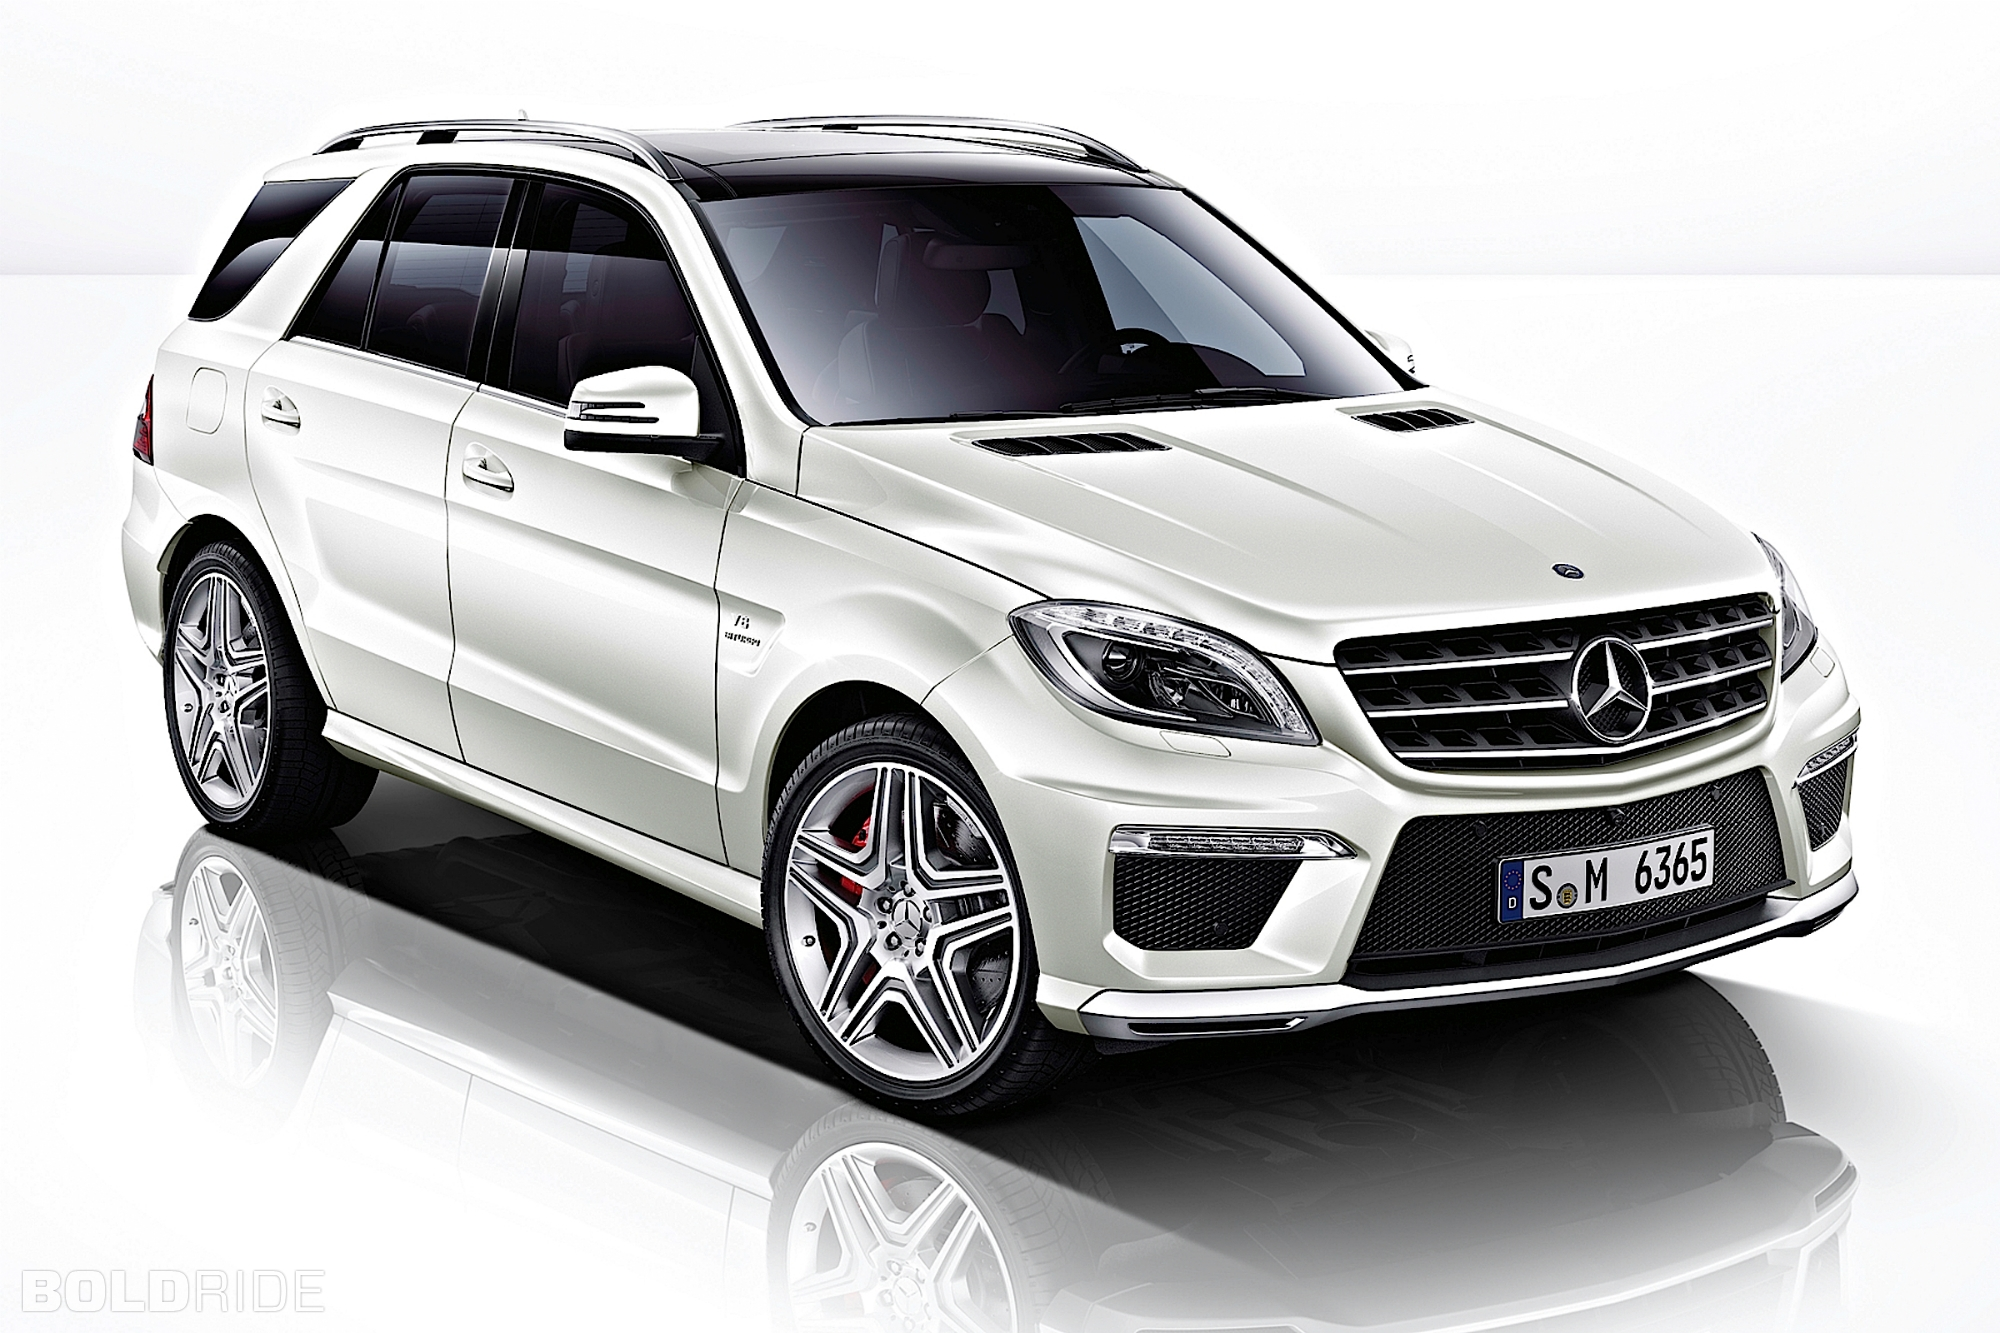 2018 mercedes benz ml63 amg car photos catalog 2018. Black Bedroom Furniture Sets. Home Design Ideas